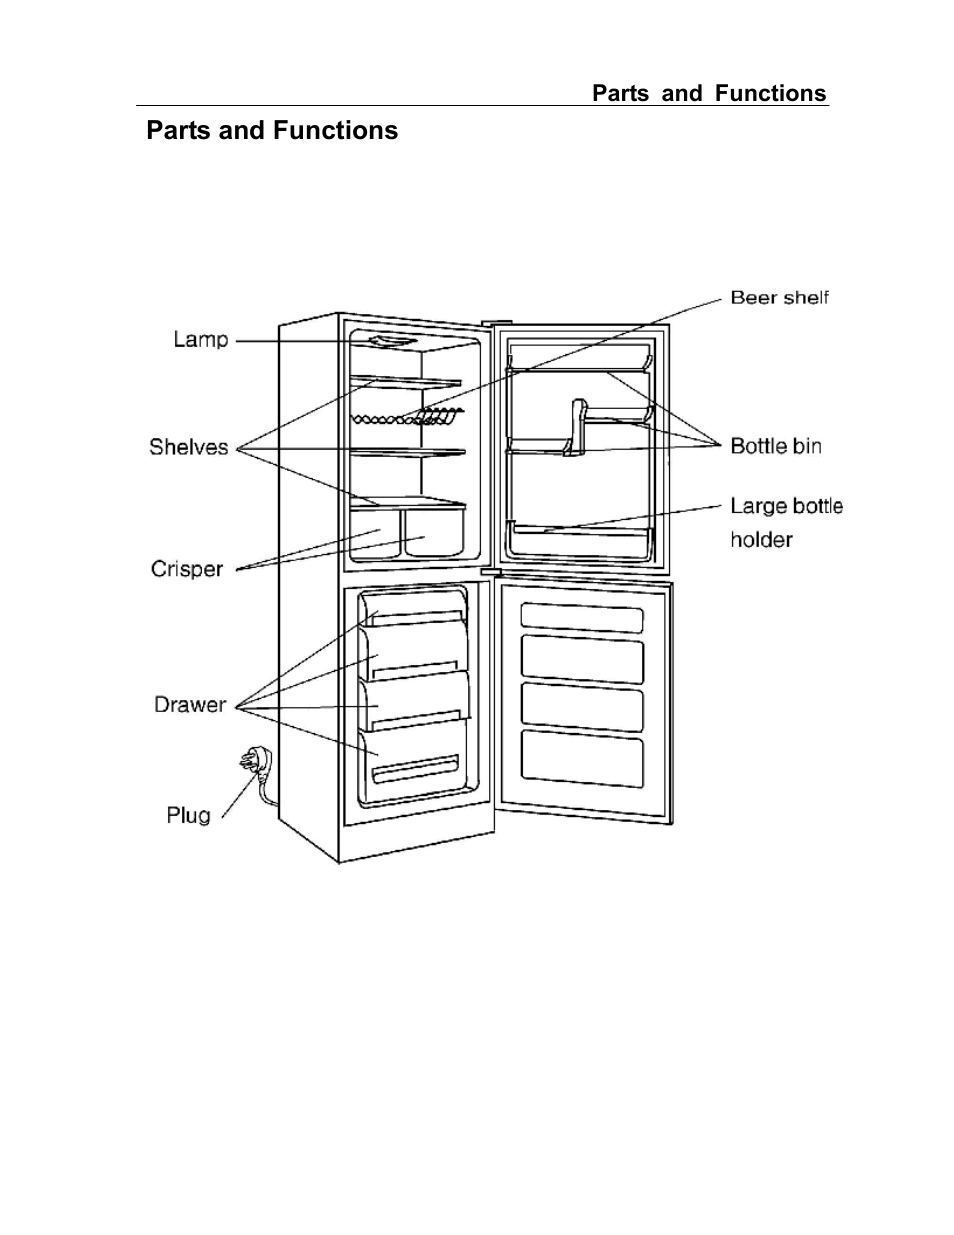 Haier Parts Diagram Electrical Wiring Diagrams Dryer And Functions Hrf 329aa User Manual Page 8 32 Hte14waaww 02